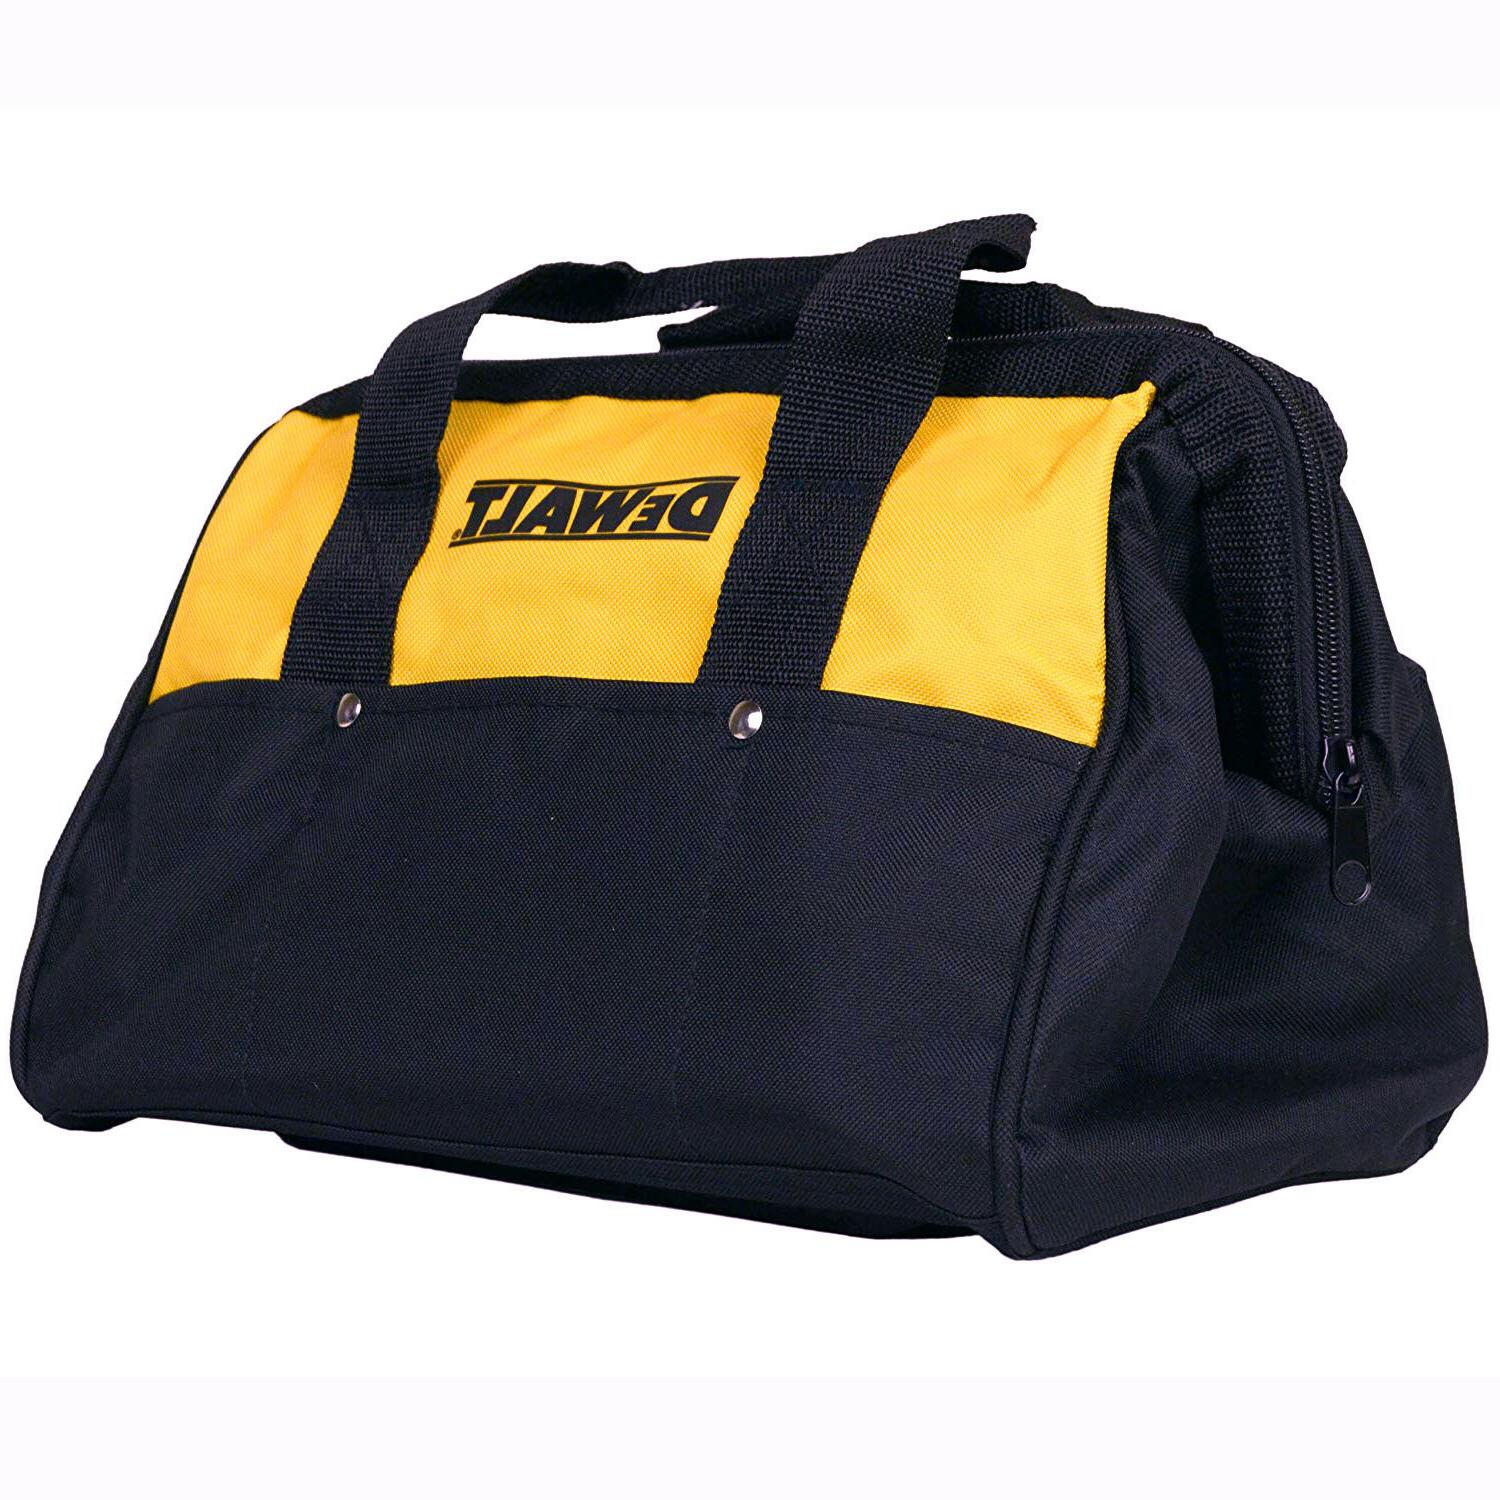 Dewalt Bag Heavy Duty w Runners 3 Outside